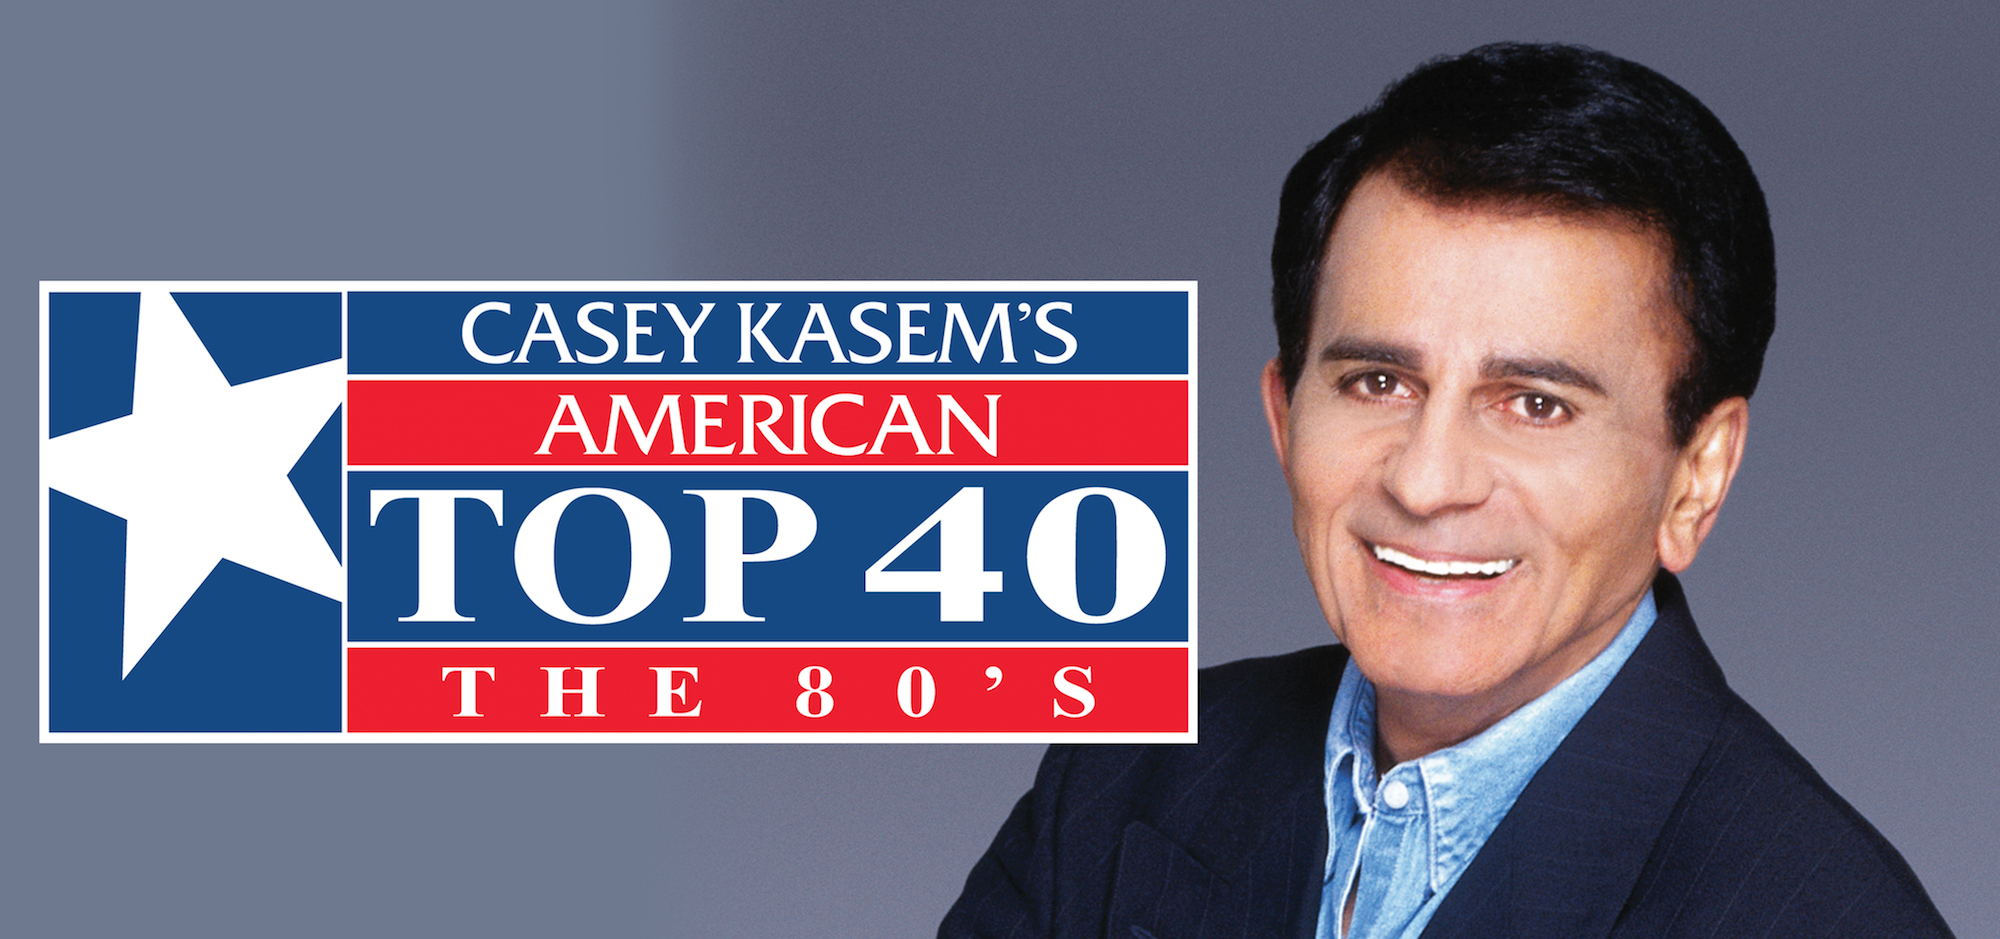 50 Years Ago-  Casey Kasem's American Top 40 Started